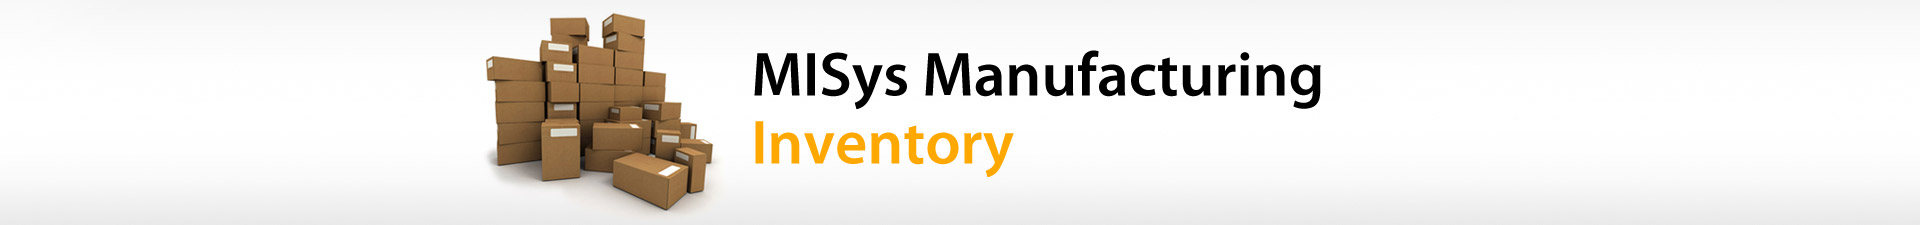 MISys Manufacturing Software Inventory Control and Management